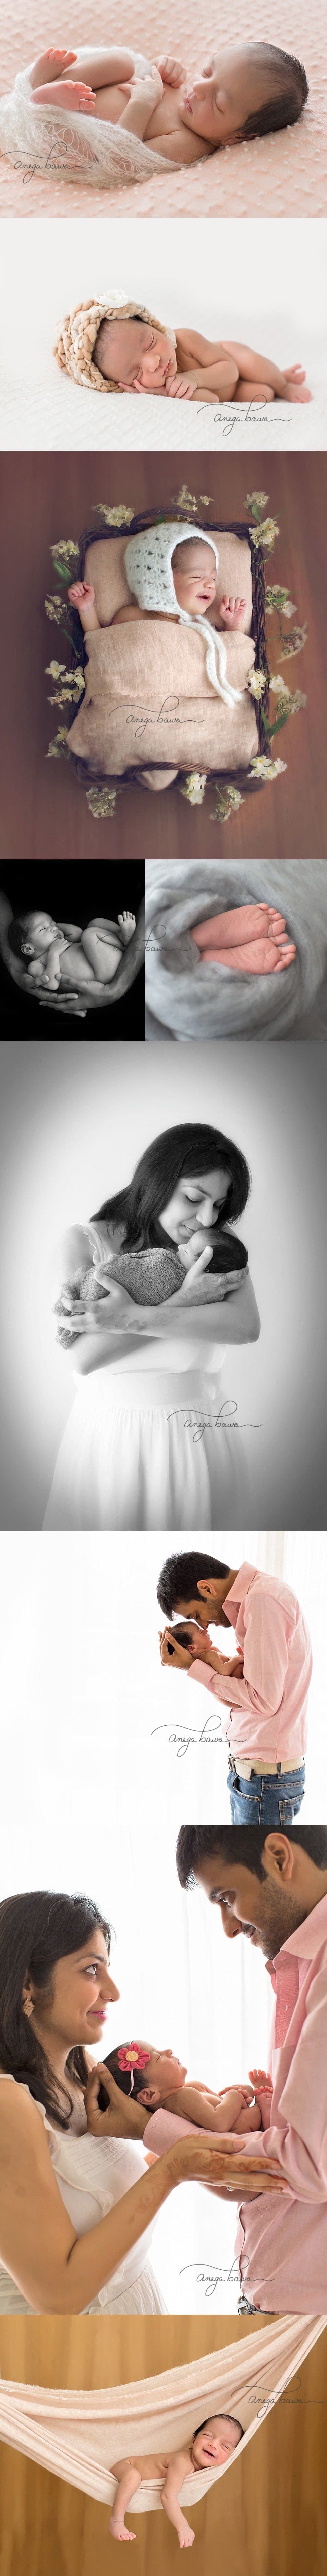 newborn photographer in india